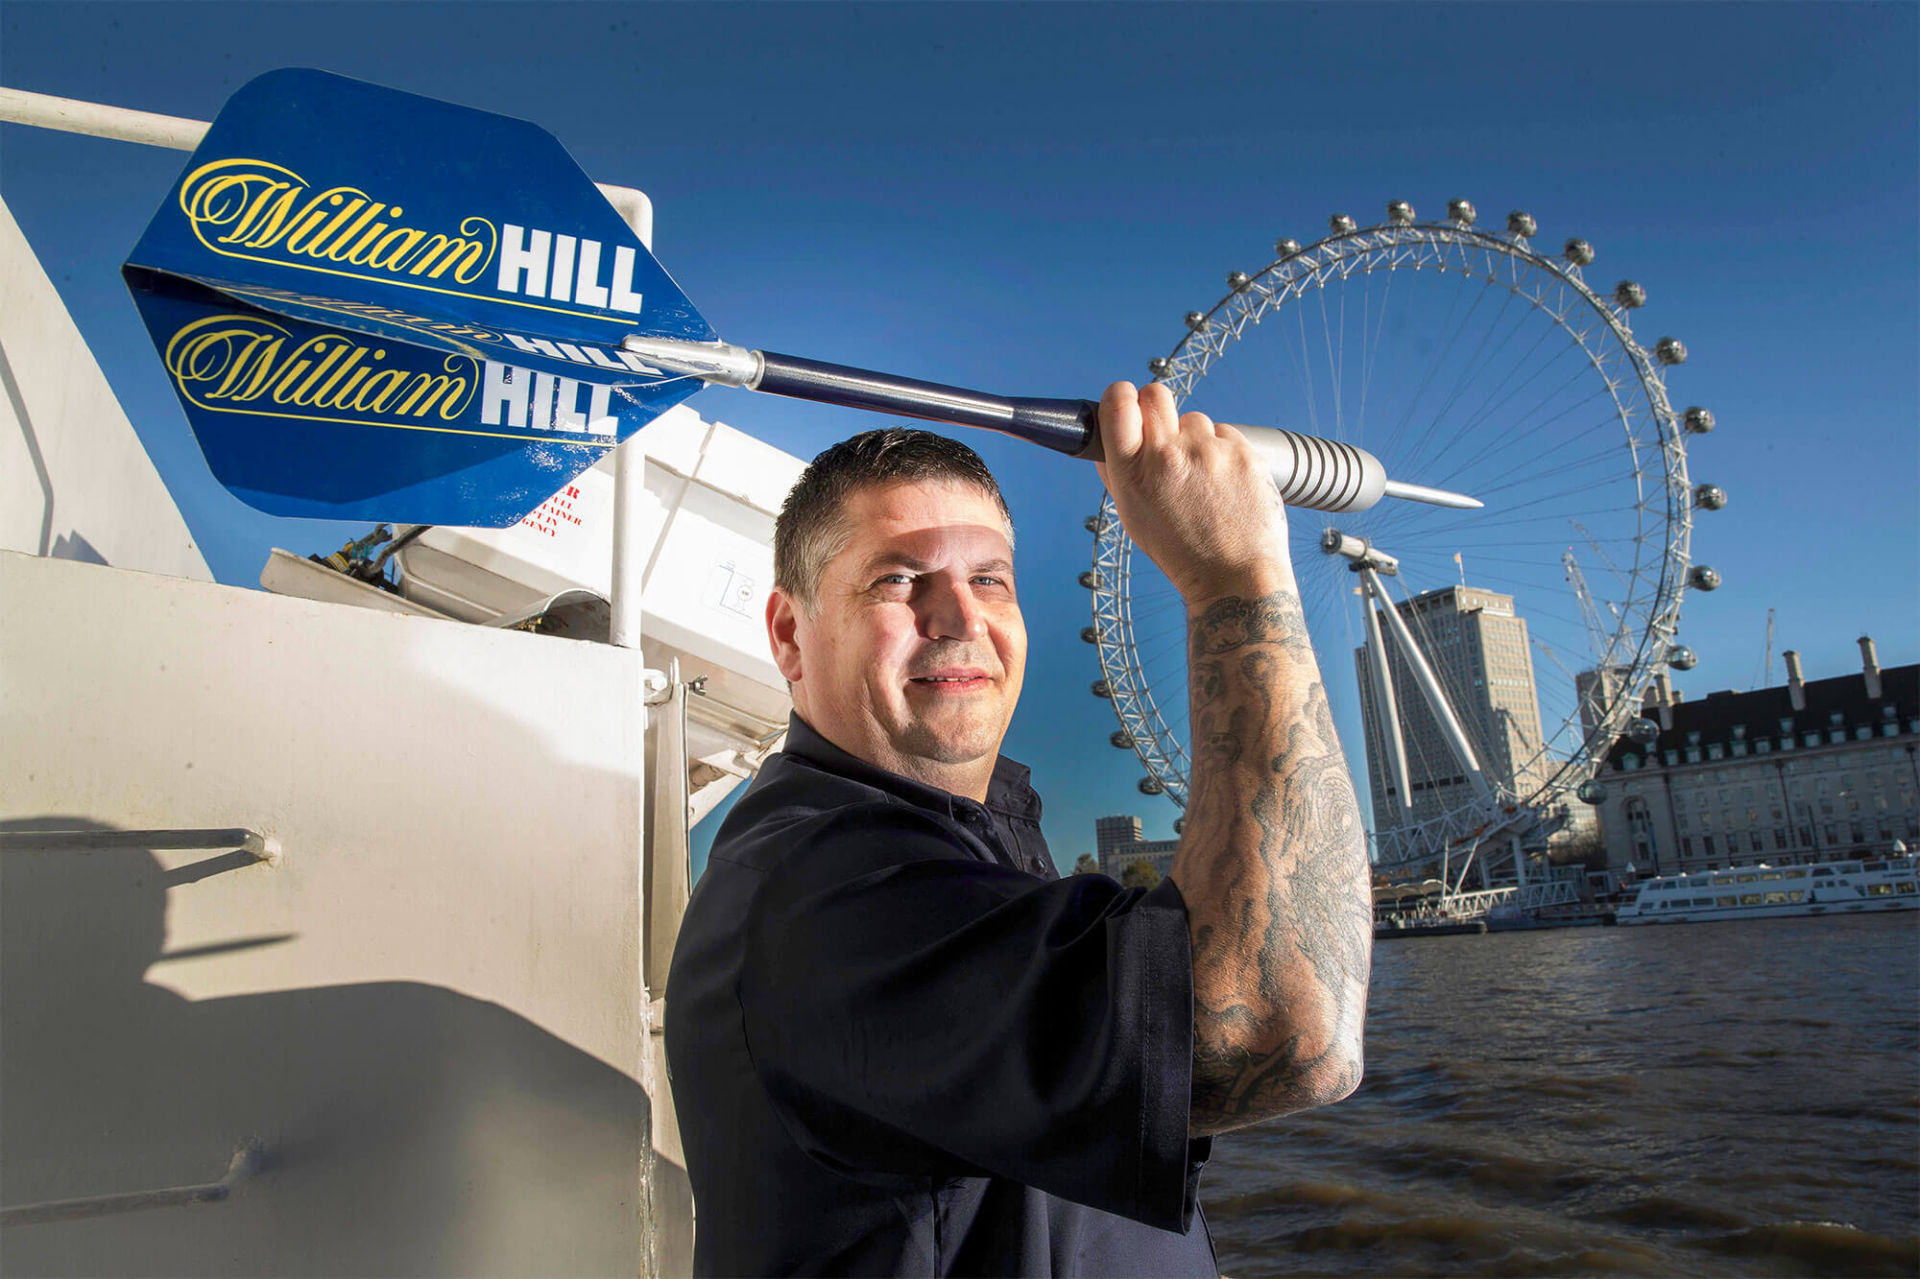 A man holding a giant dart prop with william hill logo.